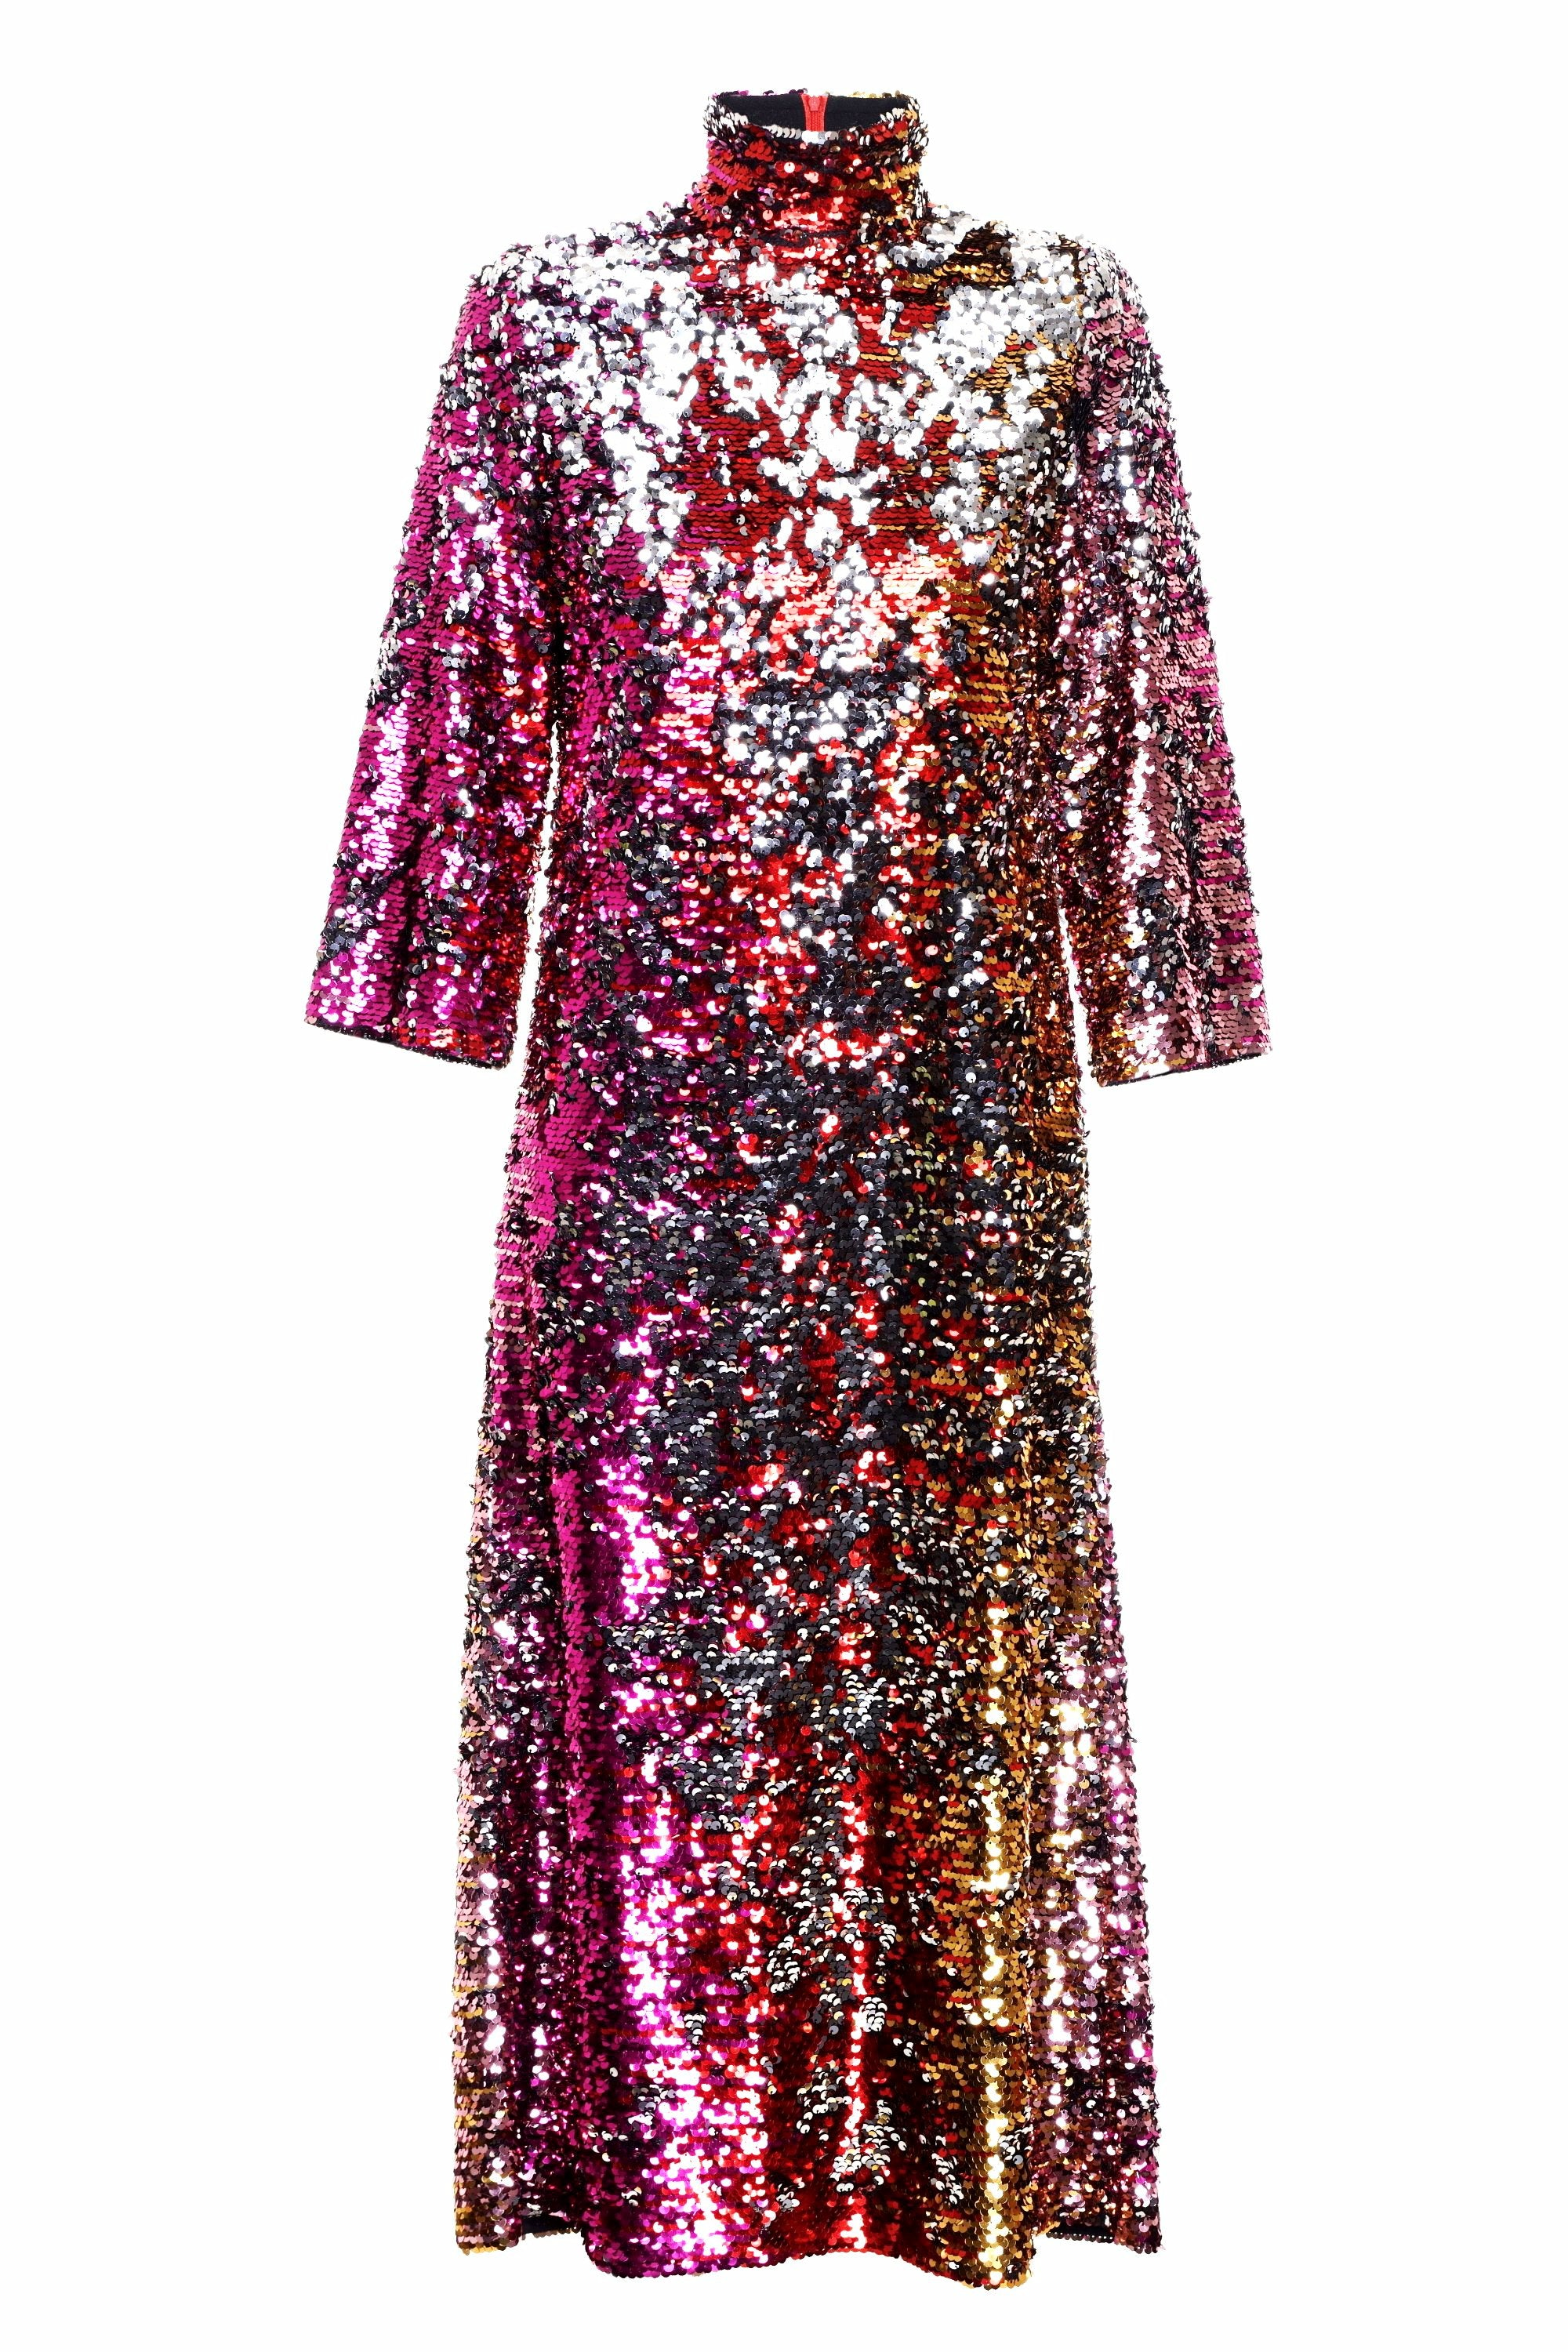 REVERSIBLE SEQUIN DRESS